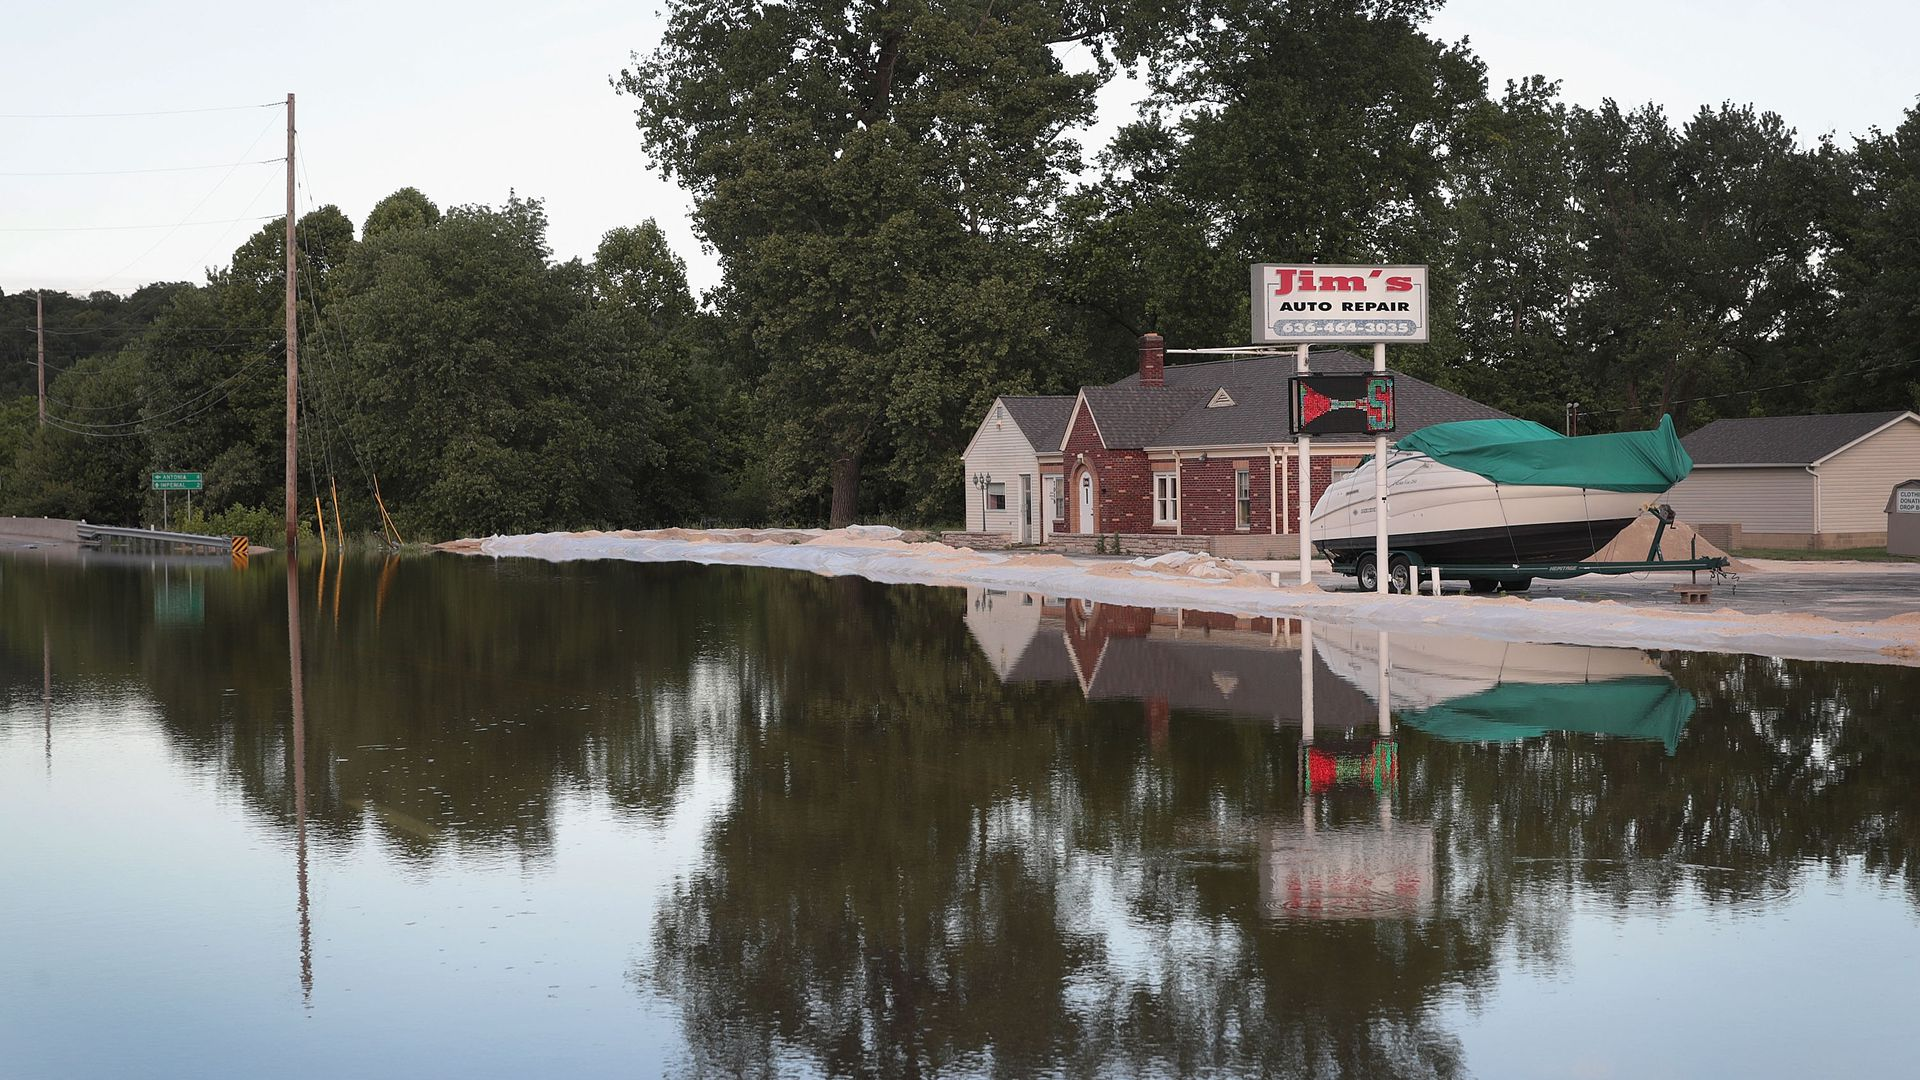 This image shows a small shop surrounded by floodwater.